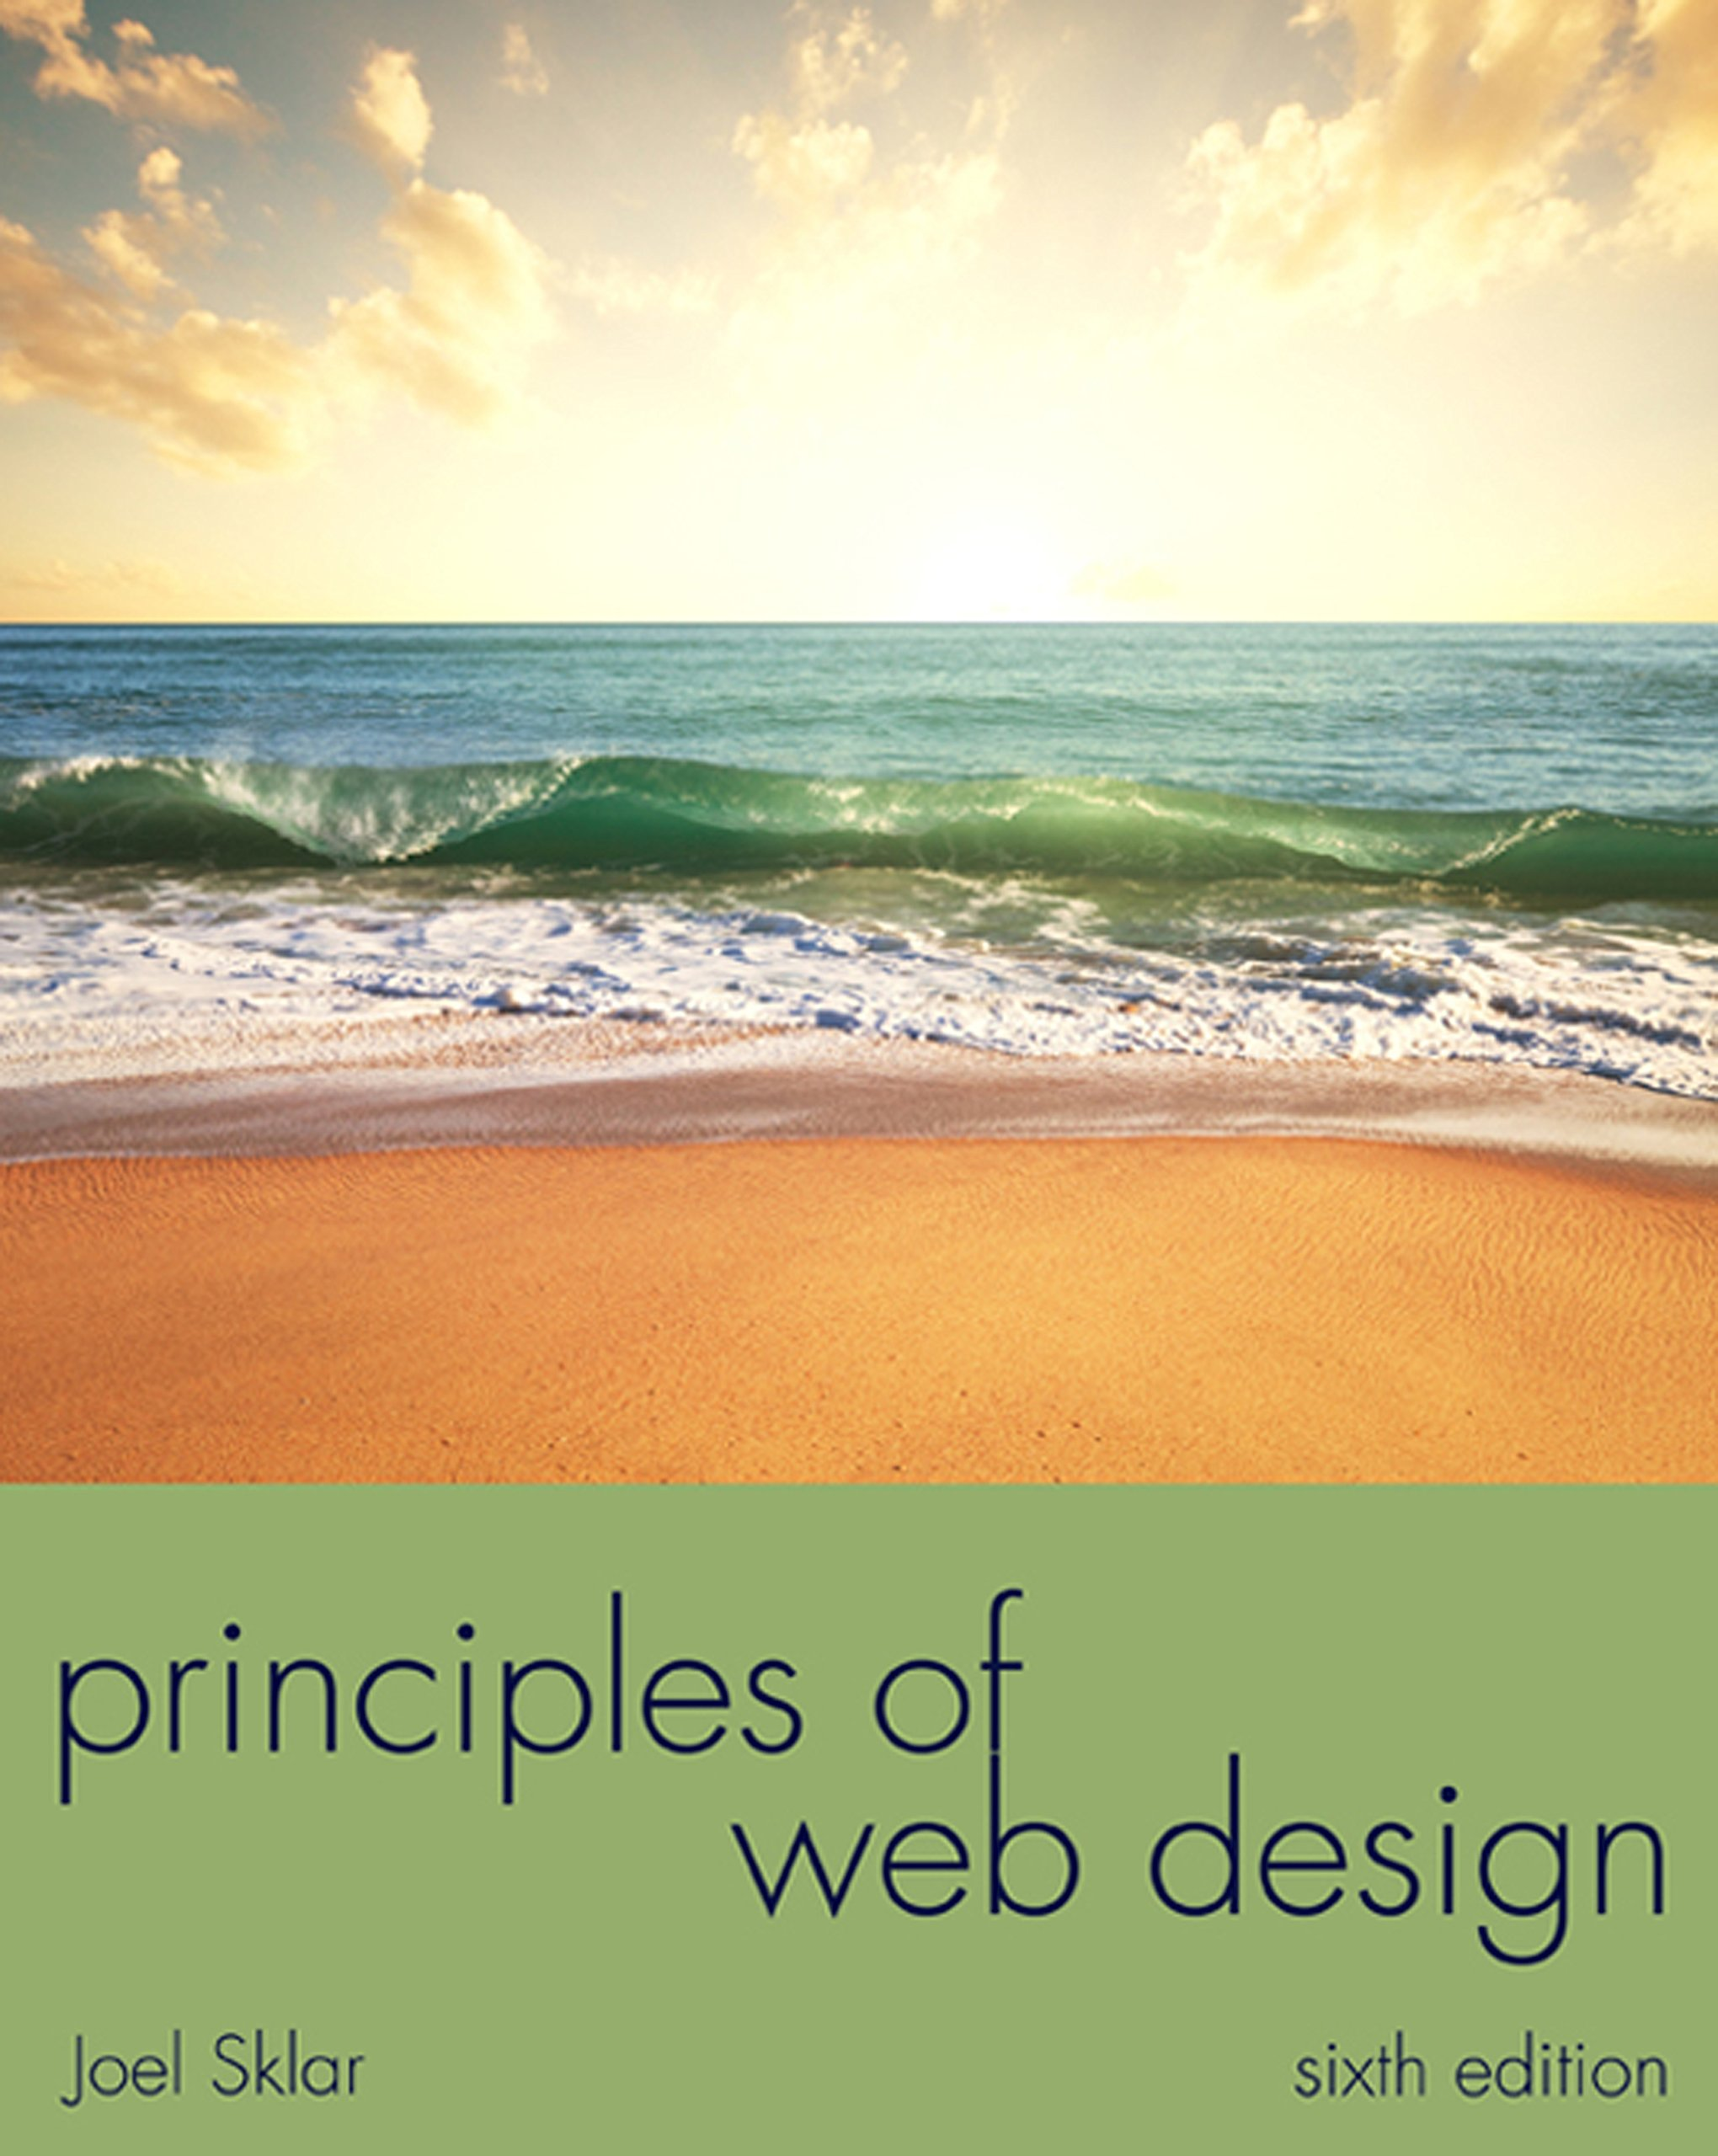 Principles Of Web Design The Web Warrior Series The Web Technologies Series 006 Sklar Joel Ebook Amazon Com